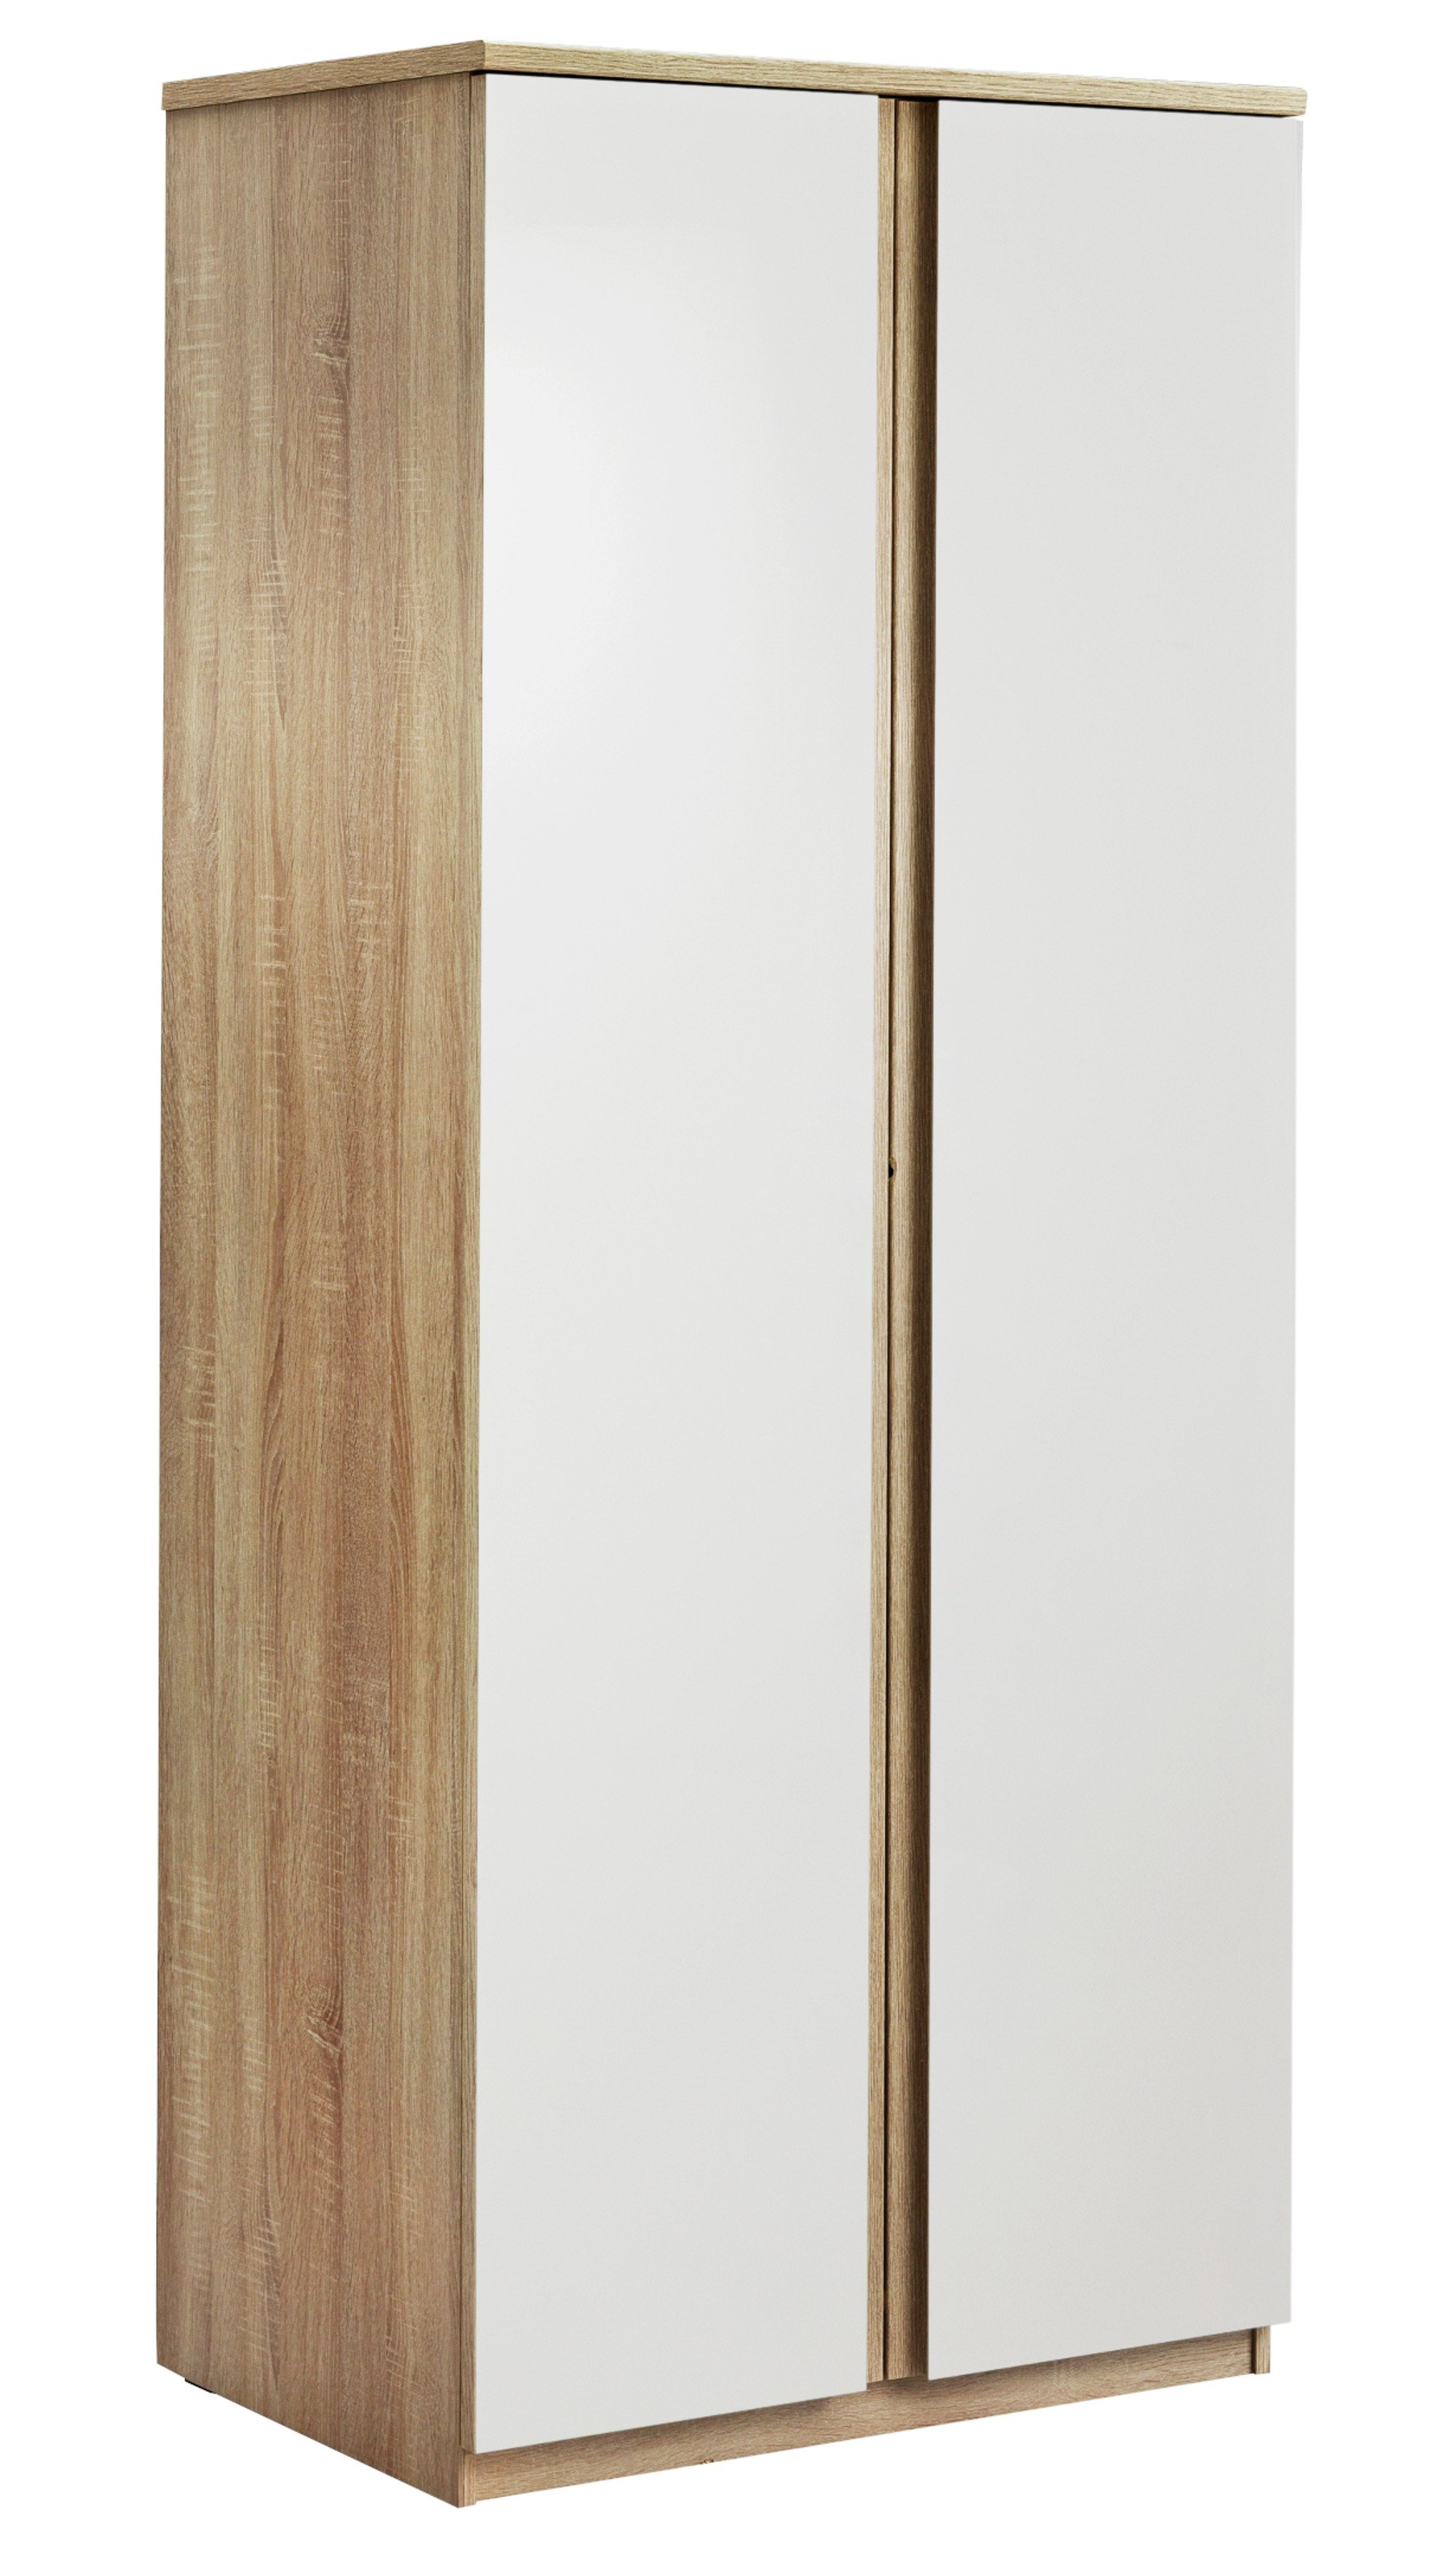 Image of Avenue 2 Door Wardrobe - Natural Oak Effect & White Gloss